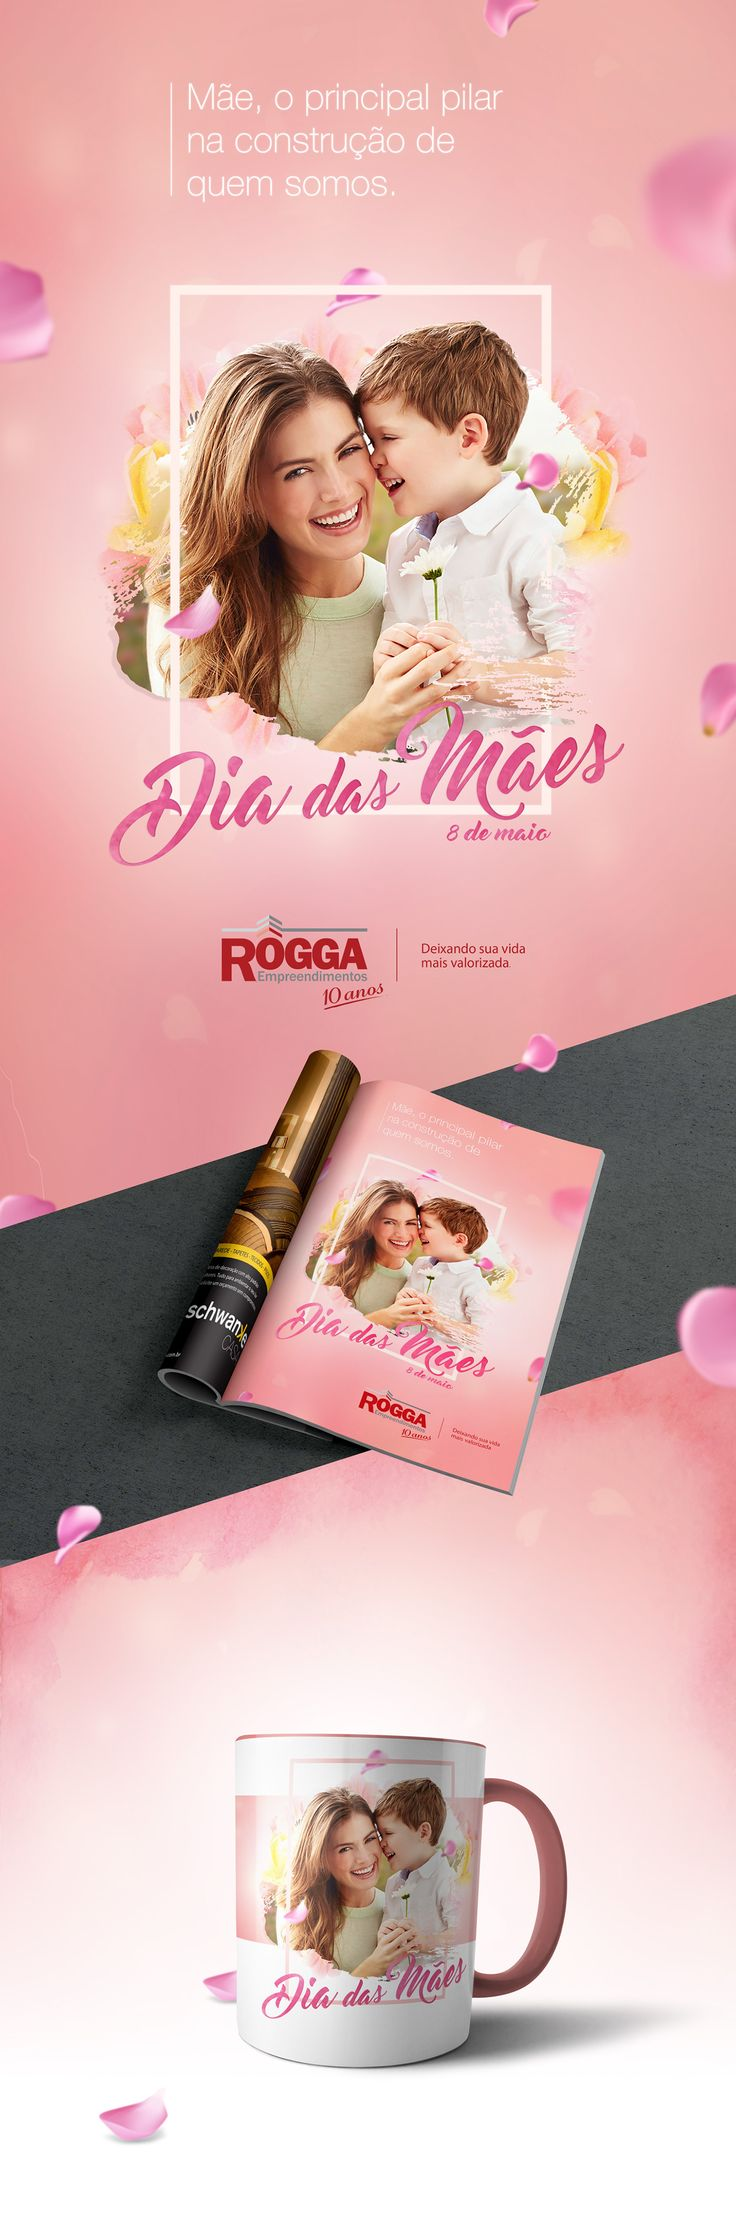 Dia das Mães - Rôgga on Behance